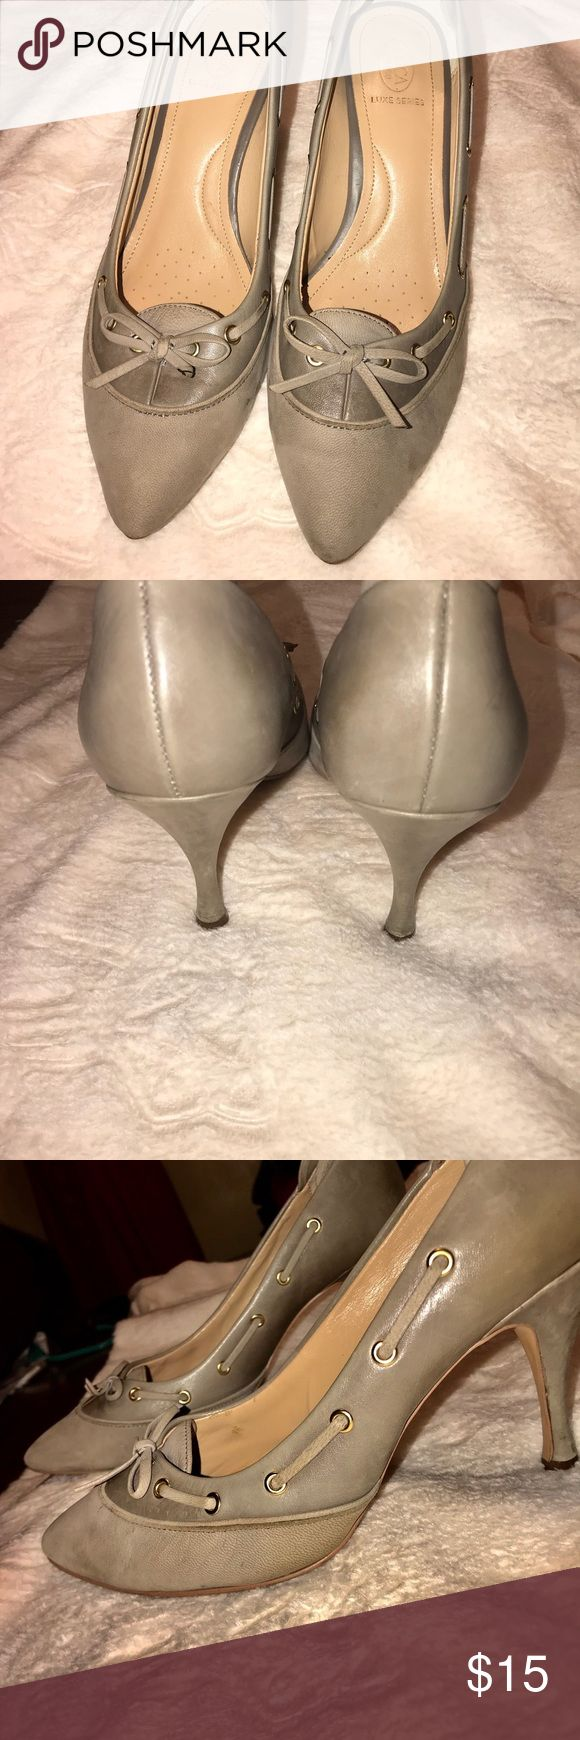 Classy Circa Joan David Heels Brand: Circa Joan David Luxe Series  Color: Taupe Leather  Condition: Gently used, minor scuffs on the outside of the shoe and a little worn out on the inside of the shoes. Matches with: Dresses and jeans. Shoes Heels